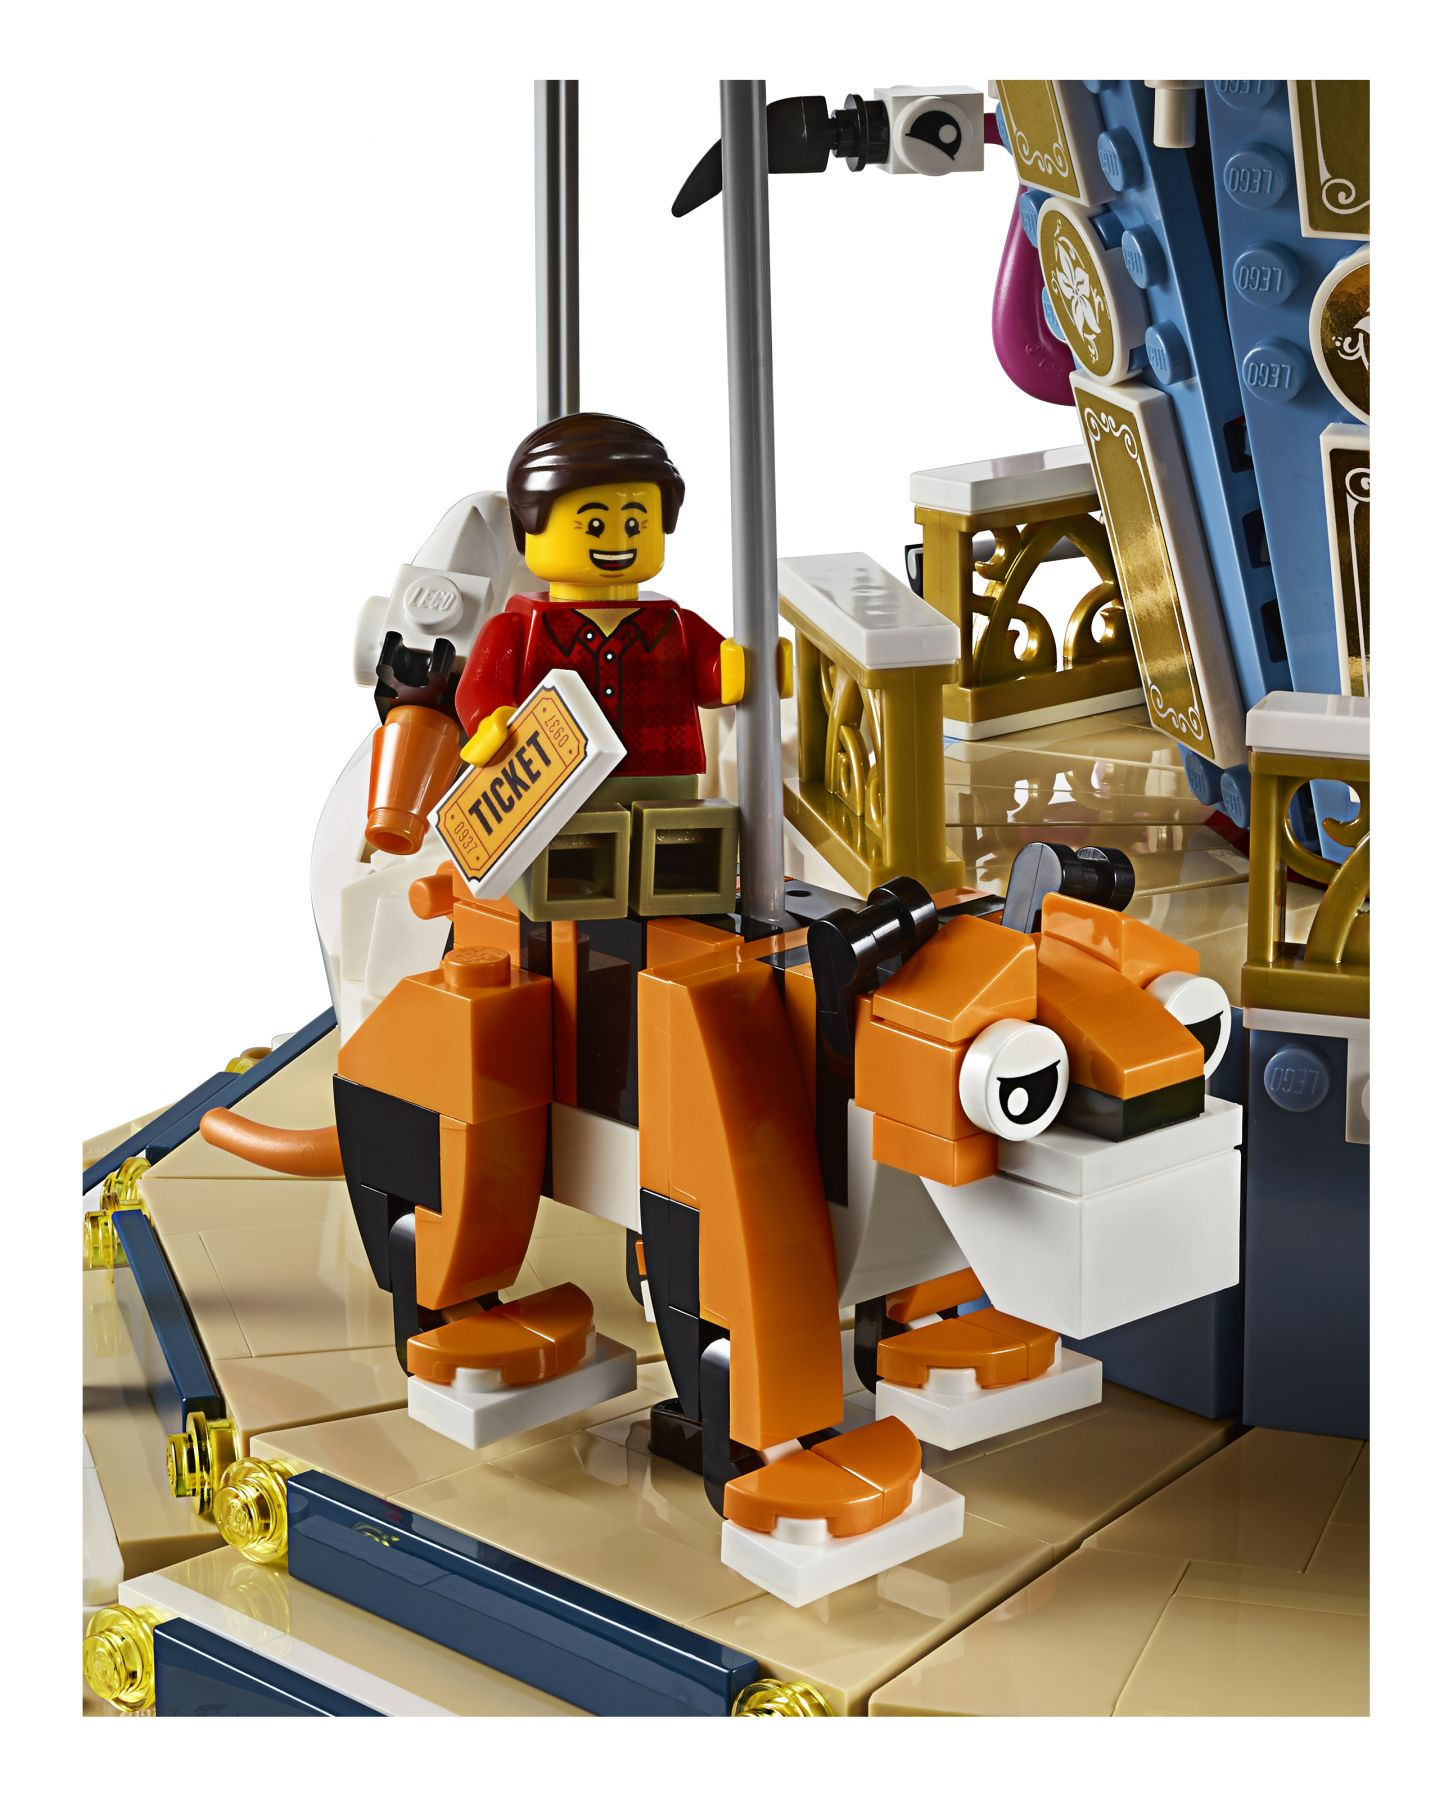 LEGO Advanced Models 10257 Karussell LEGO_10257_Fairground_Carousel_Back_07.jpg